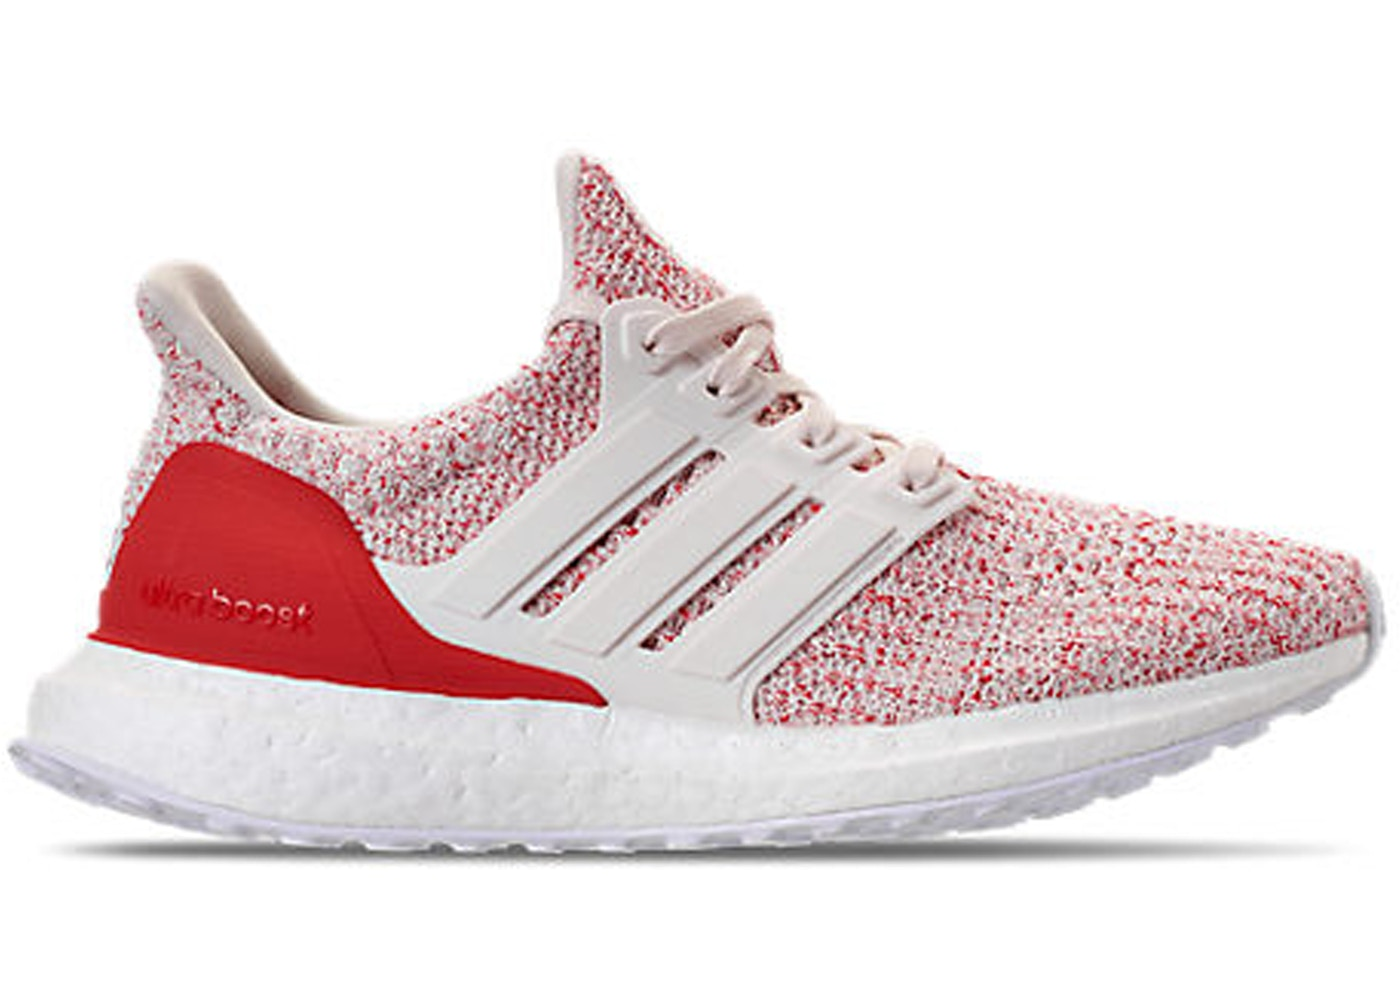 6adc50a3c adidas Ultra Boost 4.0 Chalk White Active Red (GS) - F34034